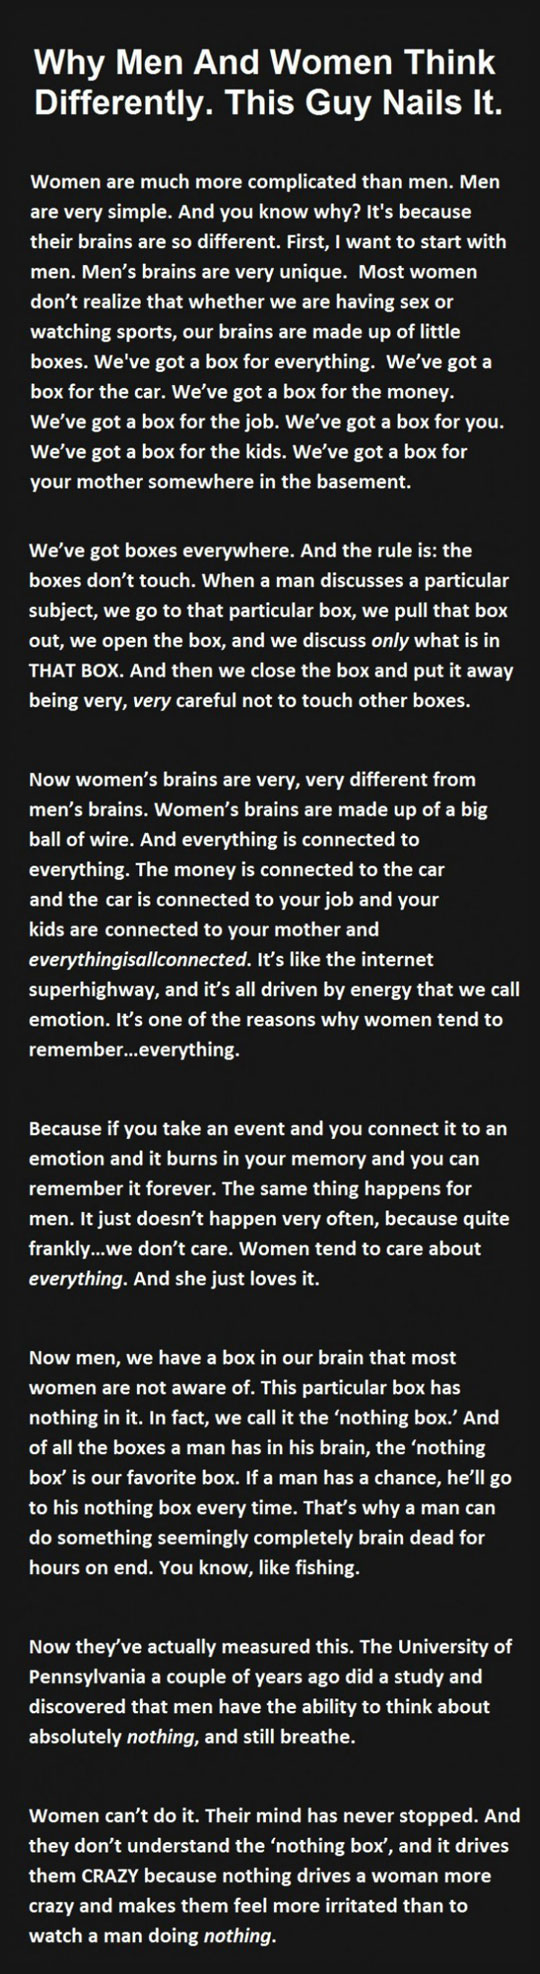 Why Women And Men Think Differently